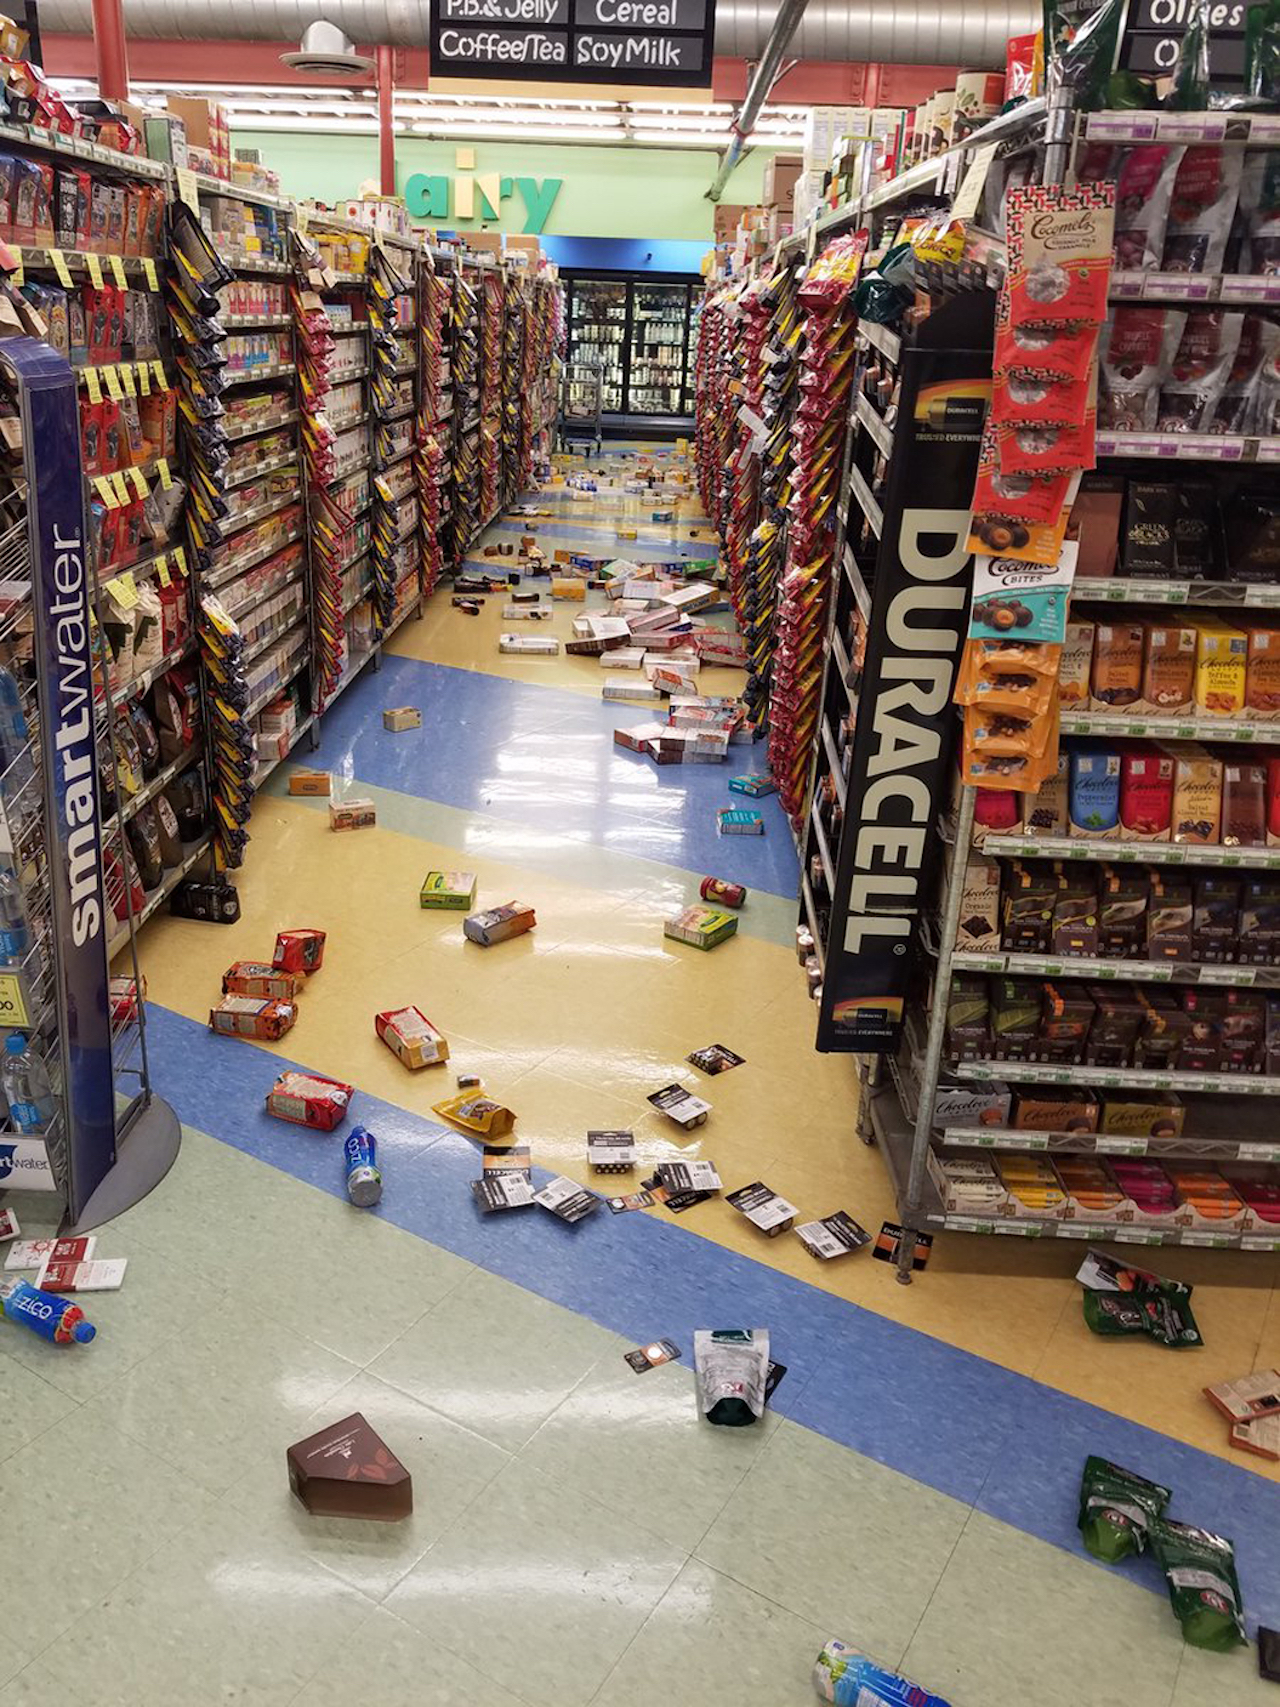 "<div class=""meta image-caption""><div class=""origin-logo origin-image ap""><span>AP</span></div><span class=""caption-text"">This photo provided by David Harper shows merchandise that fell off the shelves during an earthquake at a store in Anchorage, Alaska, on Friday, Nov. 30, 2018. (David Harper via AP)</span></div>"